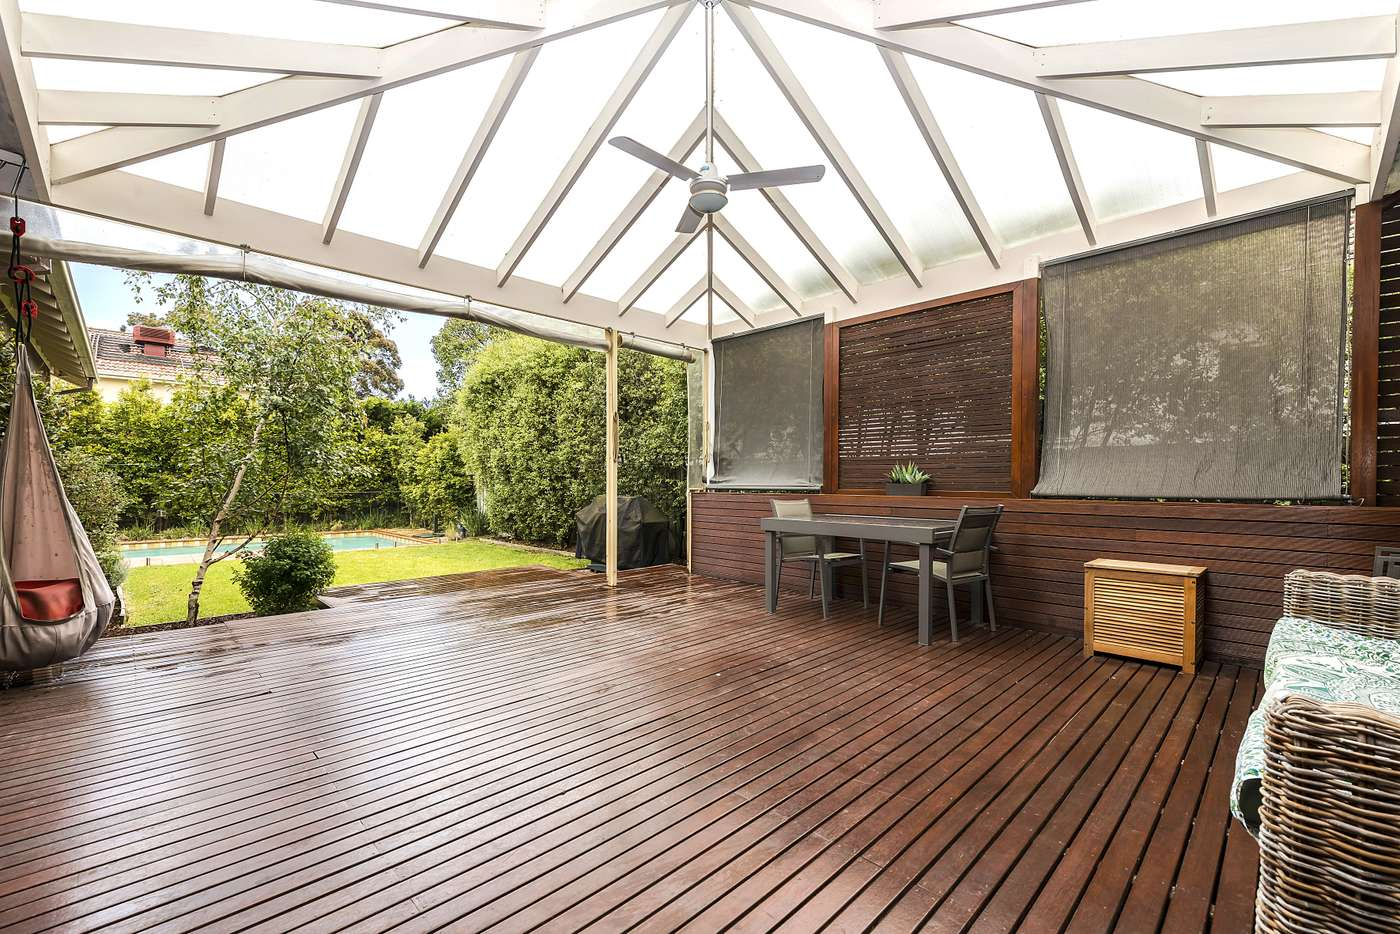 Main view of Homely house listing, 17 Kendall St, Hampton VIC 3188